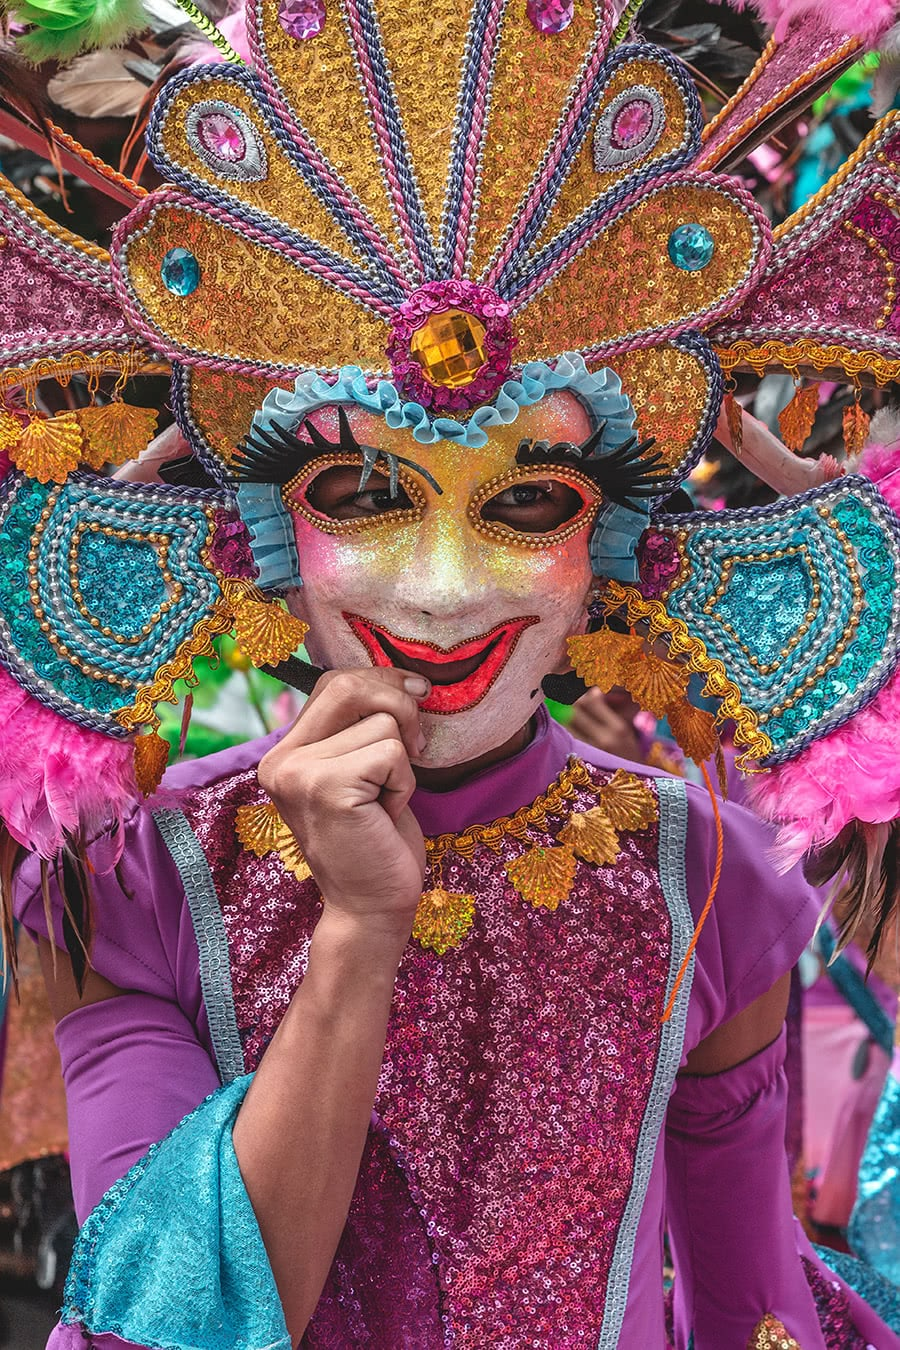 Performer at the Bacolod Masskara Festival in the Philippines.